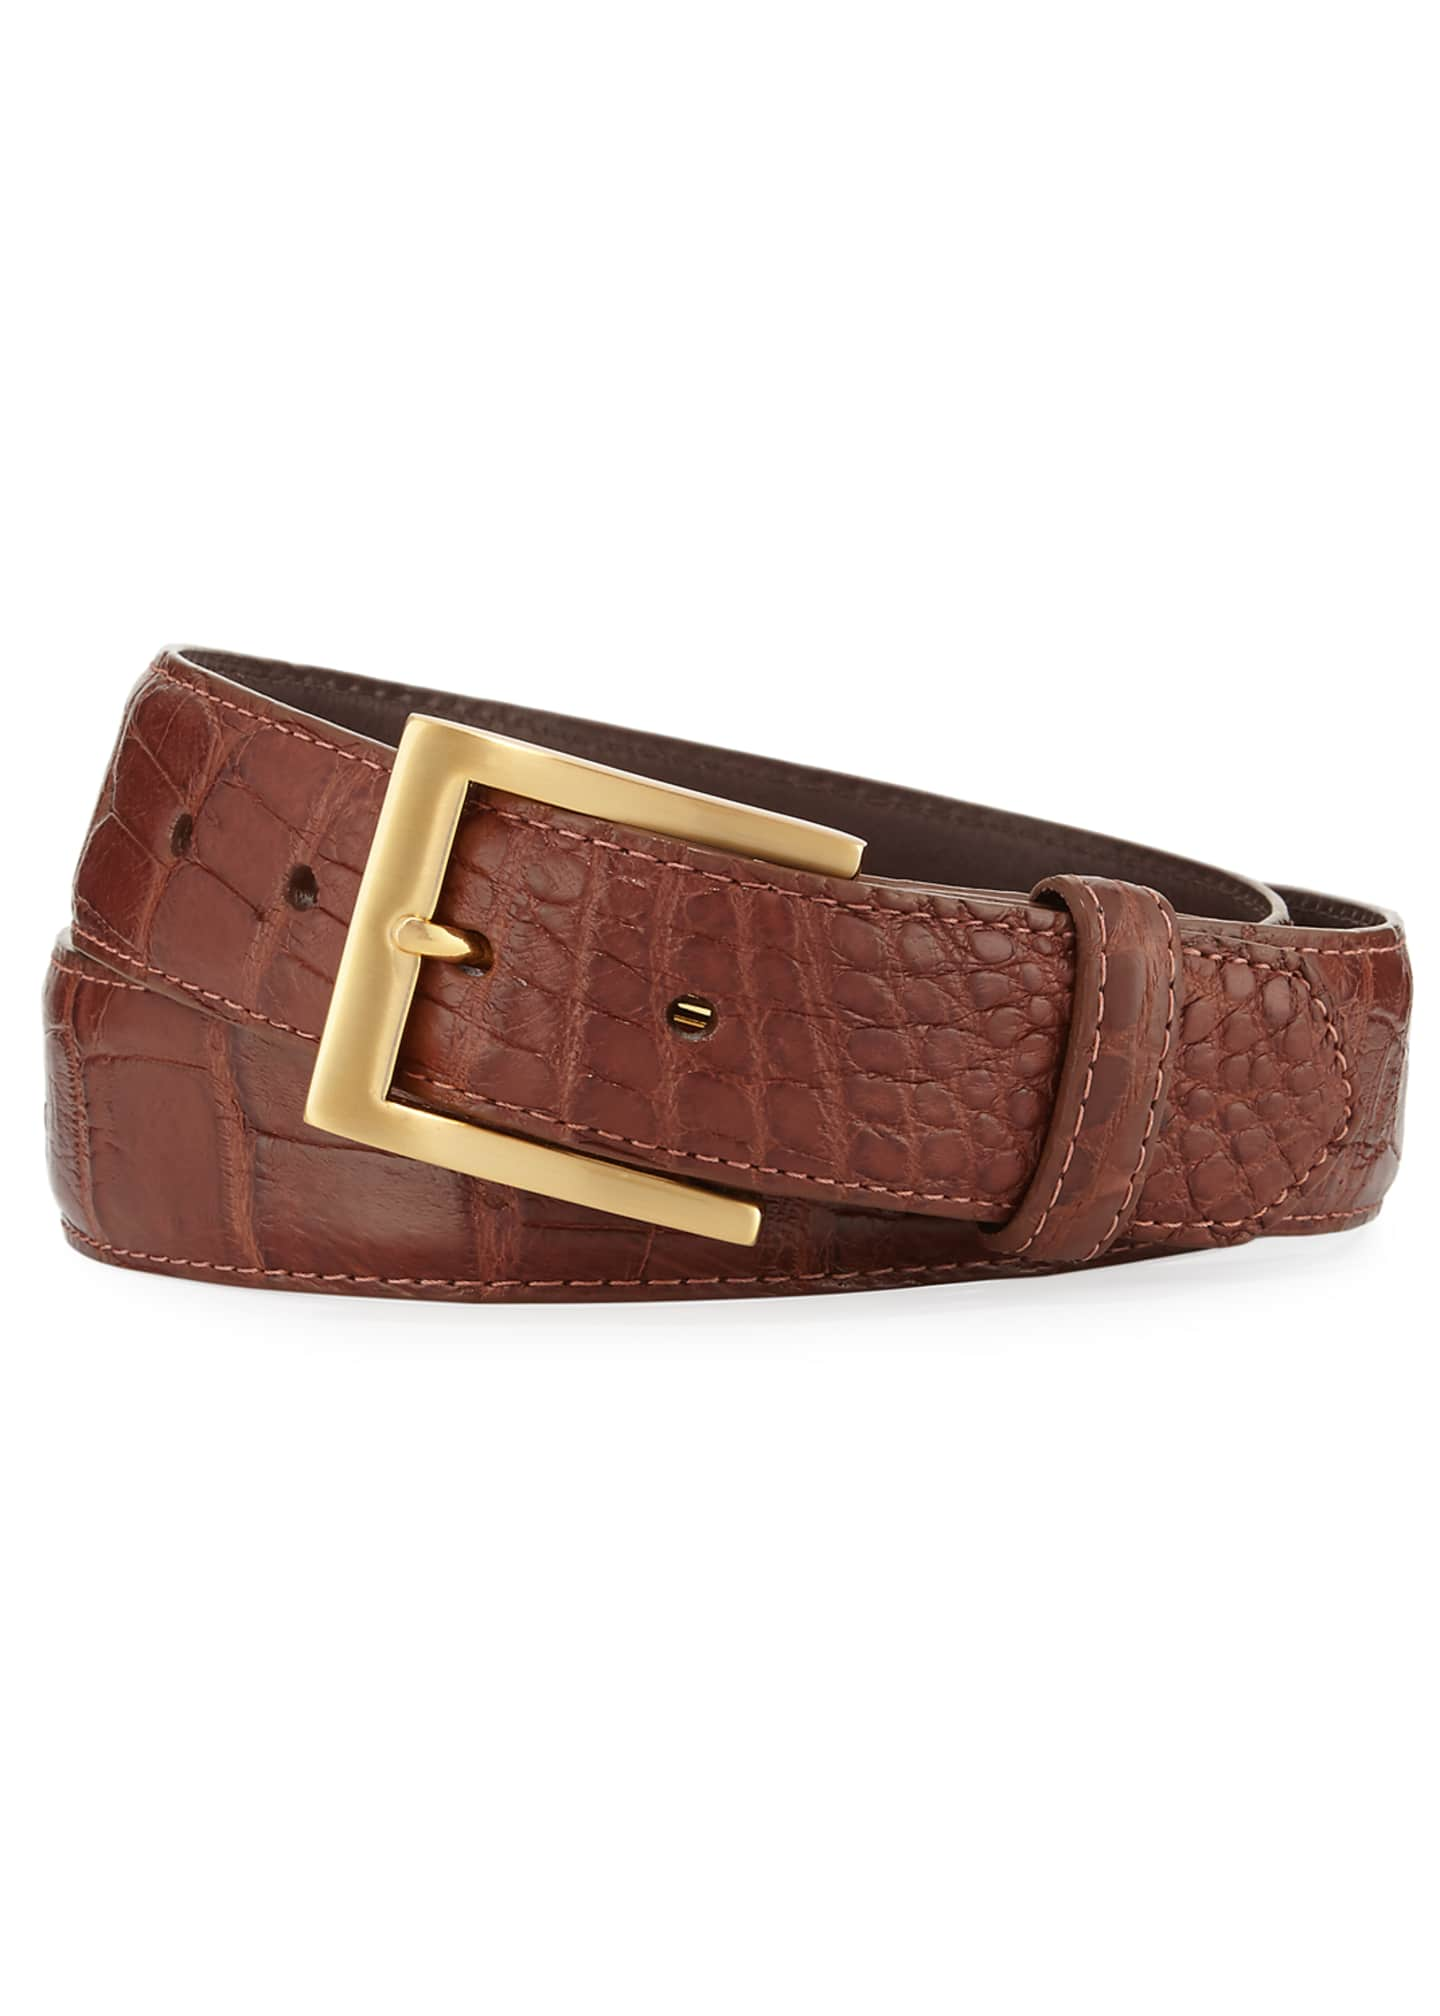 Image 2 of 2: Matte Alligator Belt with Interchangeable Buckles